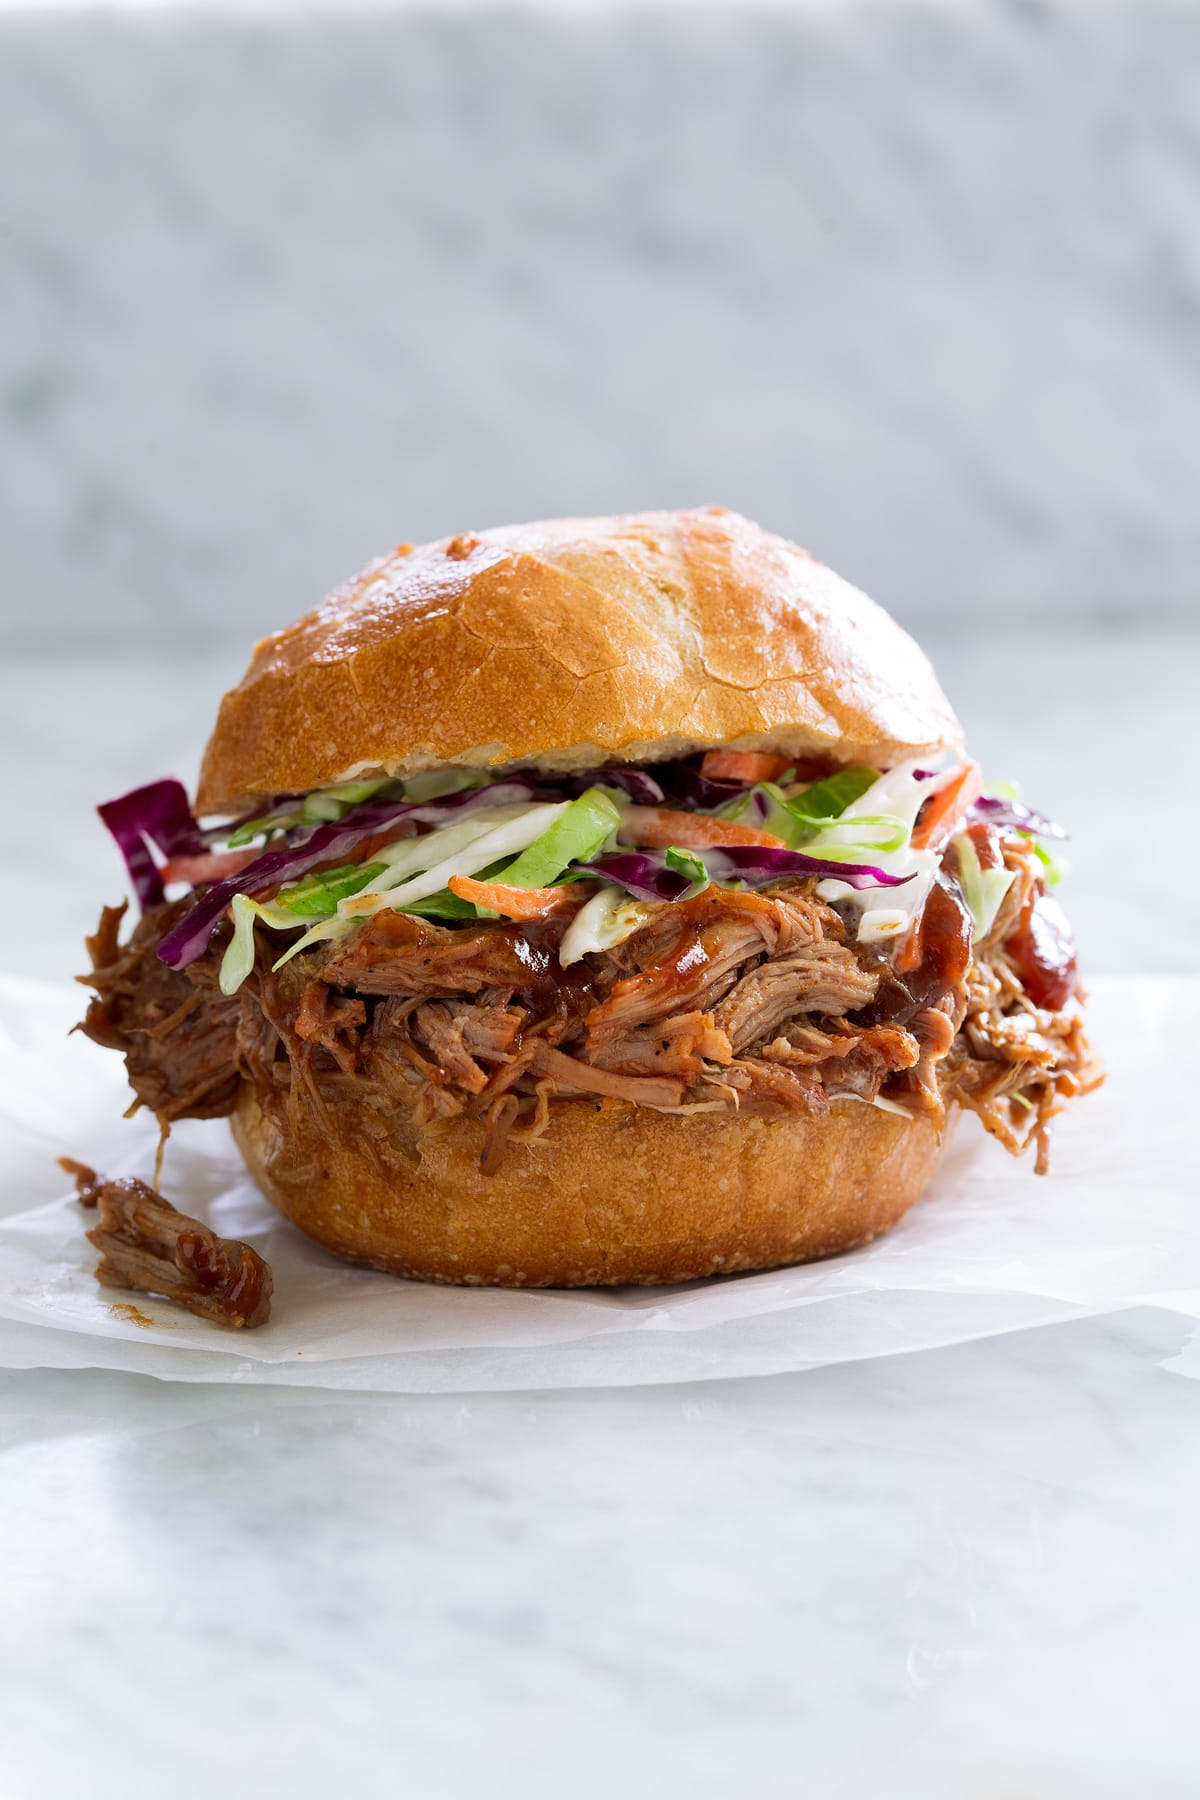 Pulled Pork shown here in a bun with coleslaw sitting on parchment paper on a marble surface